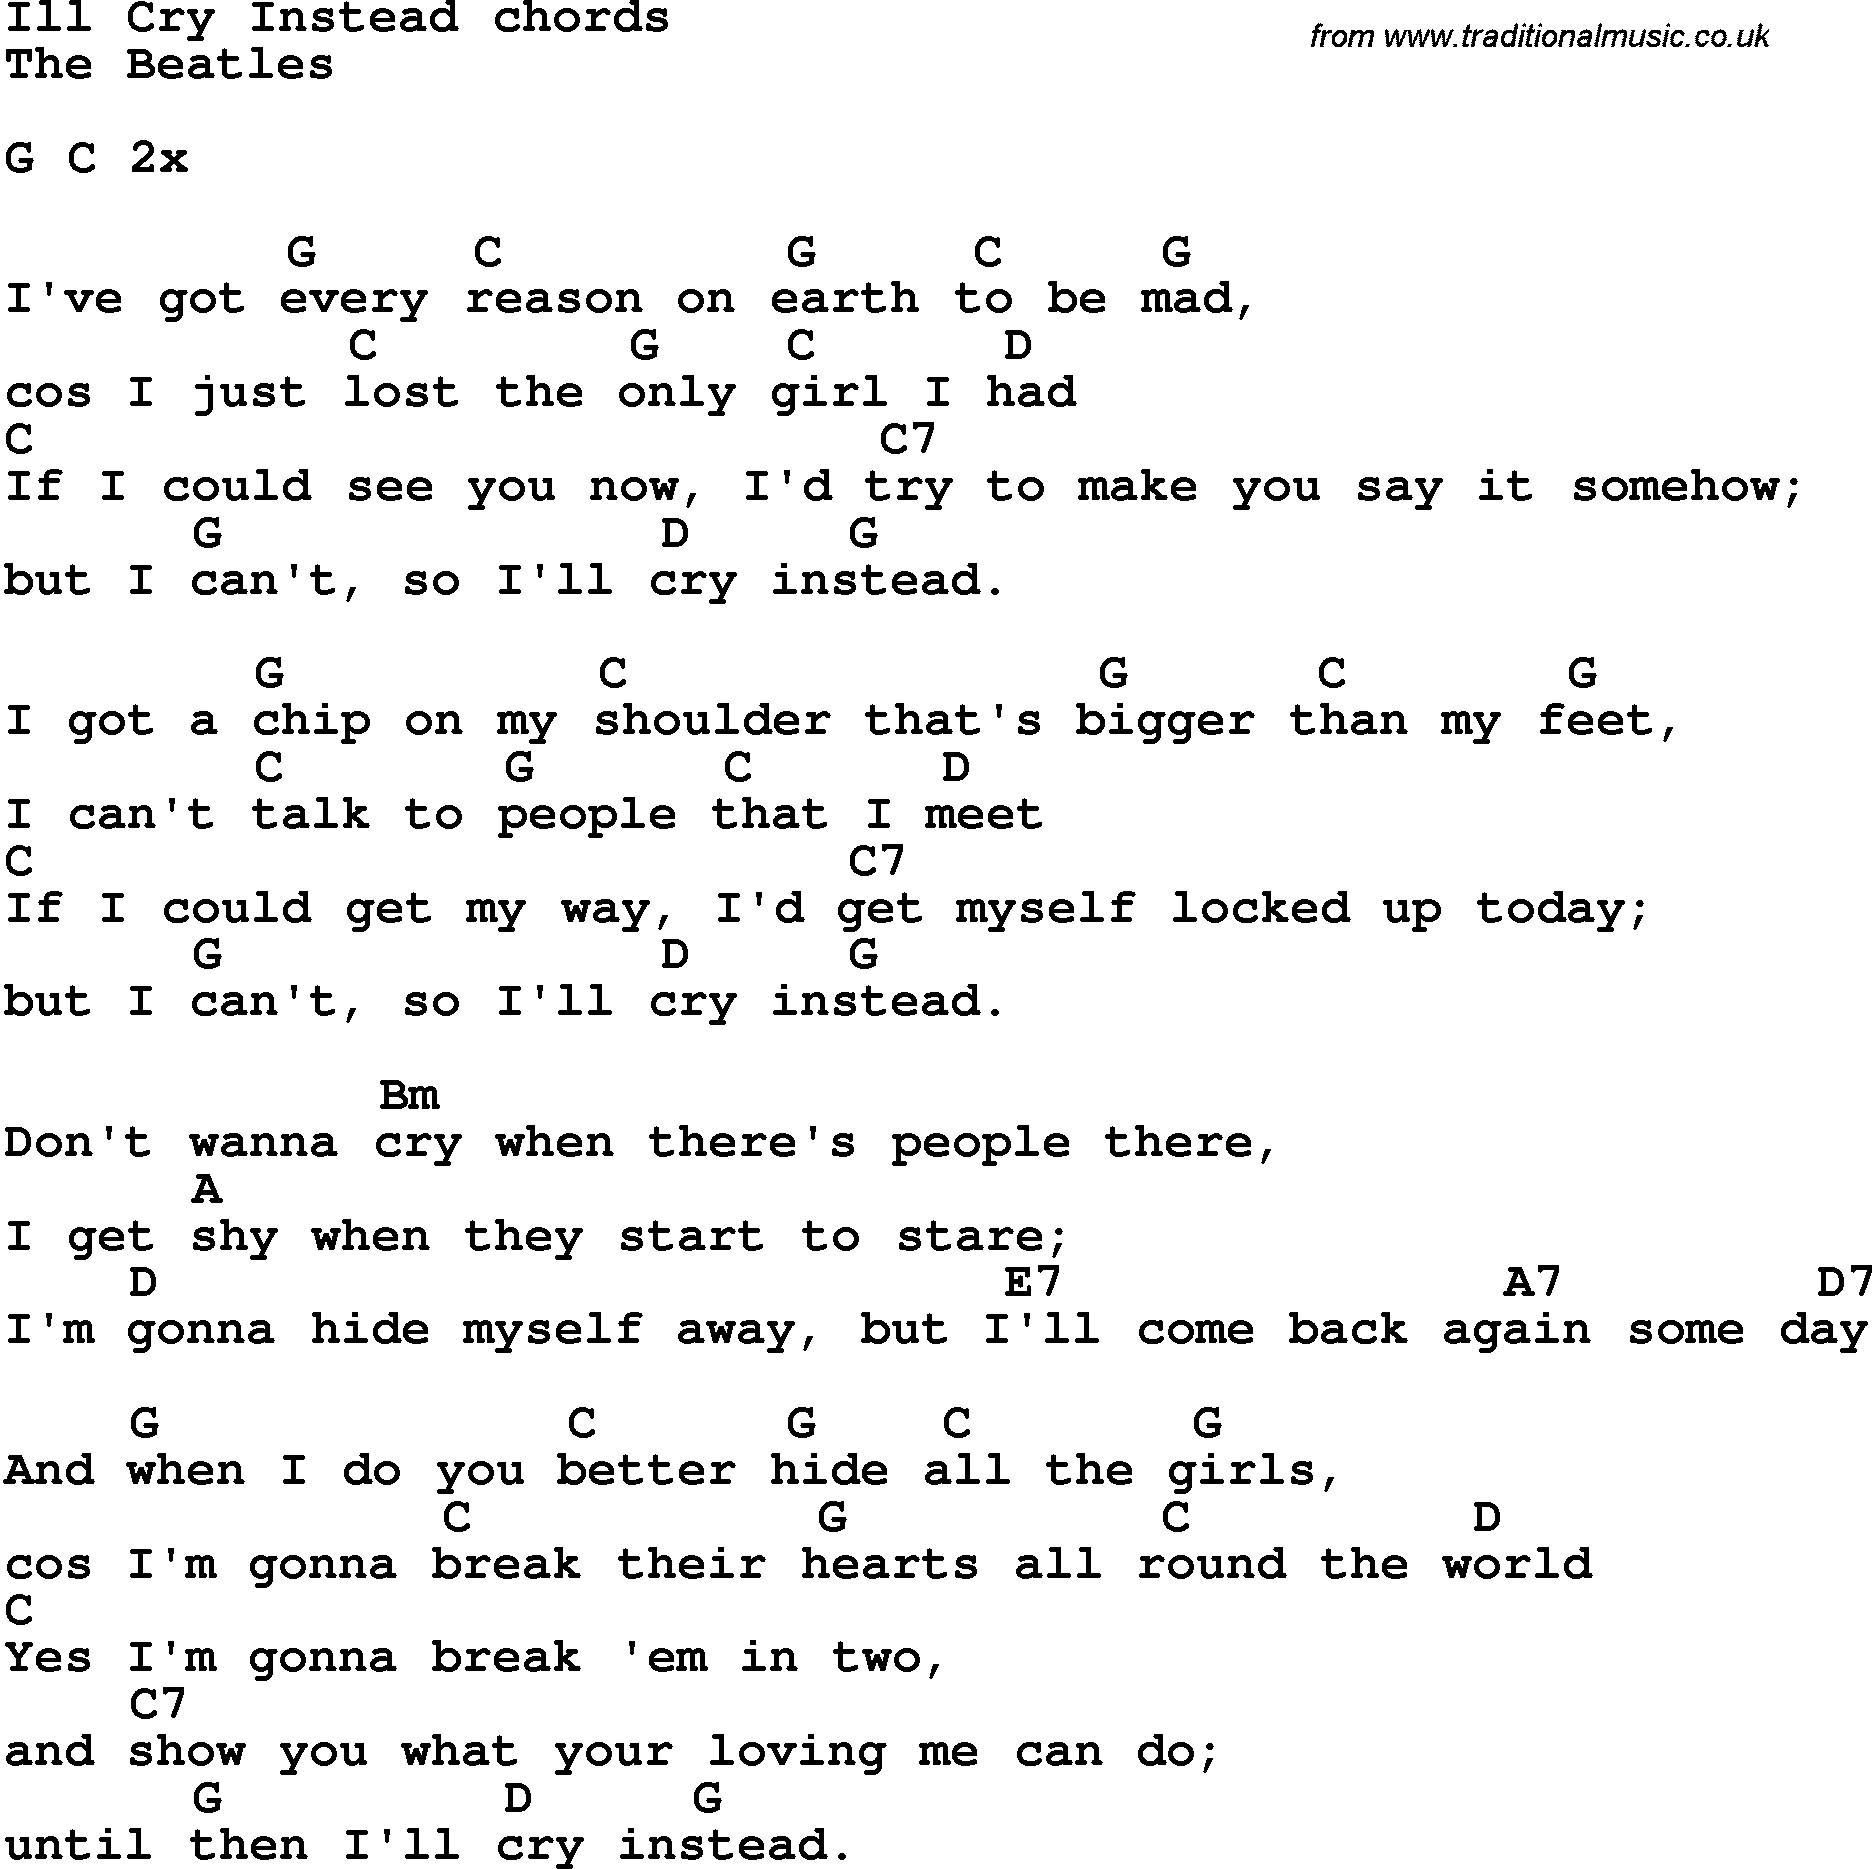 Song Lyrics With Guitar Chords For Ill Cry Instead The Beatles